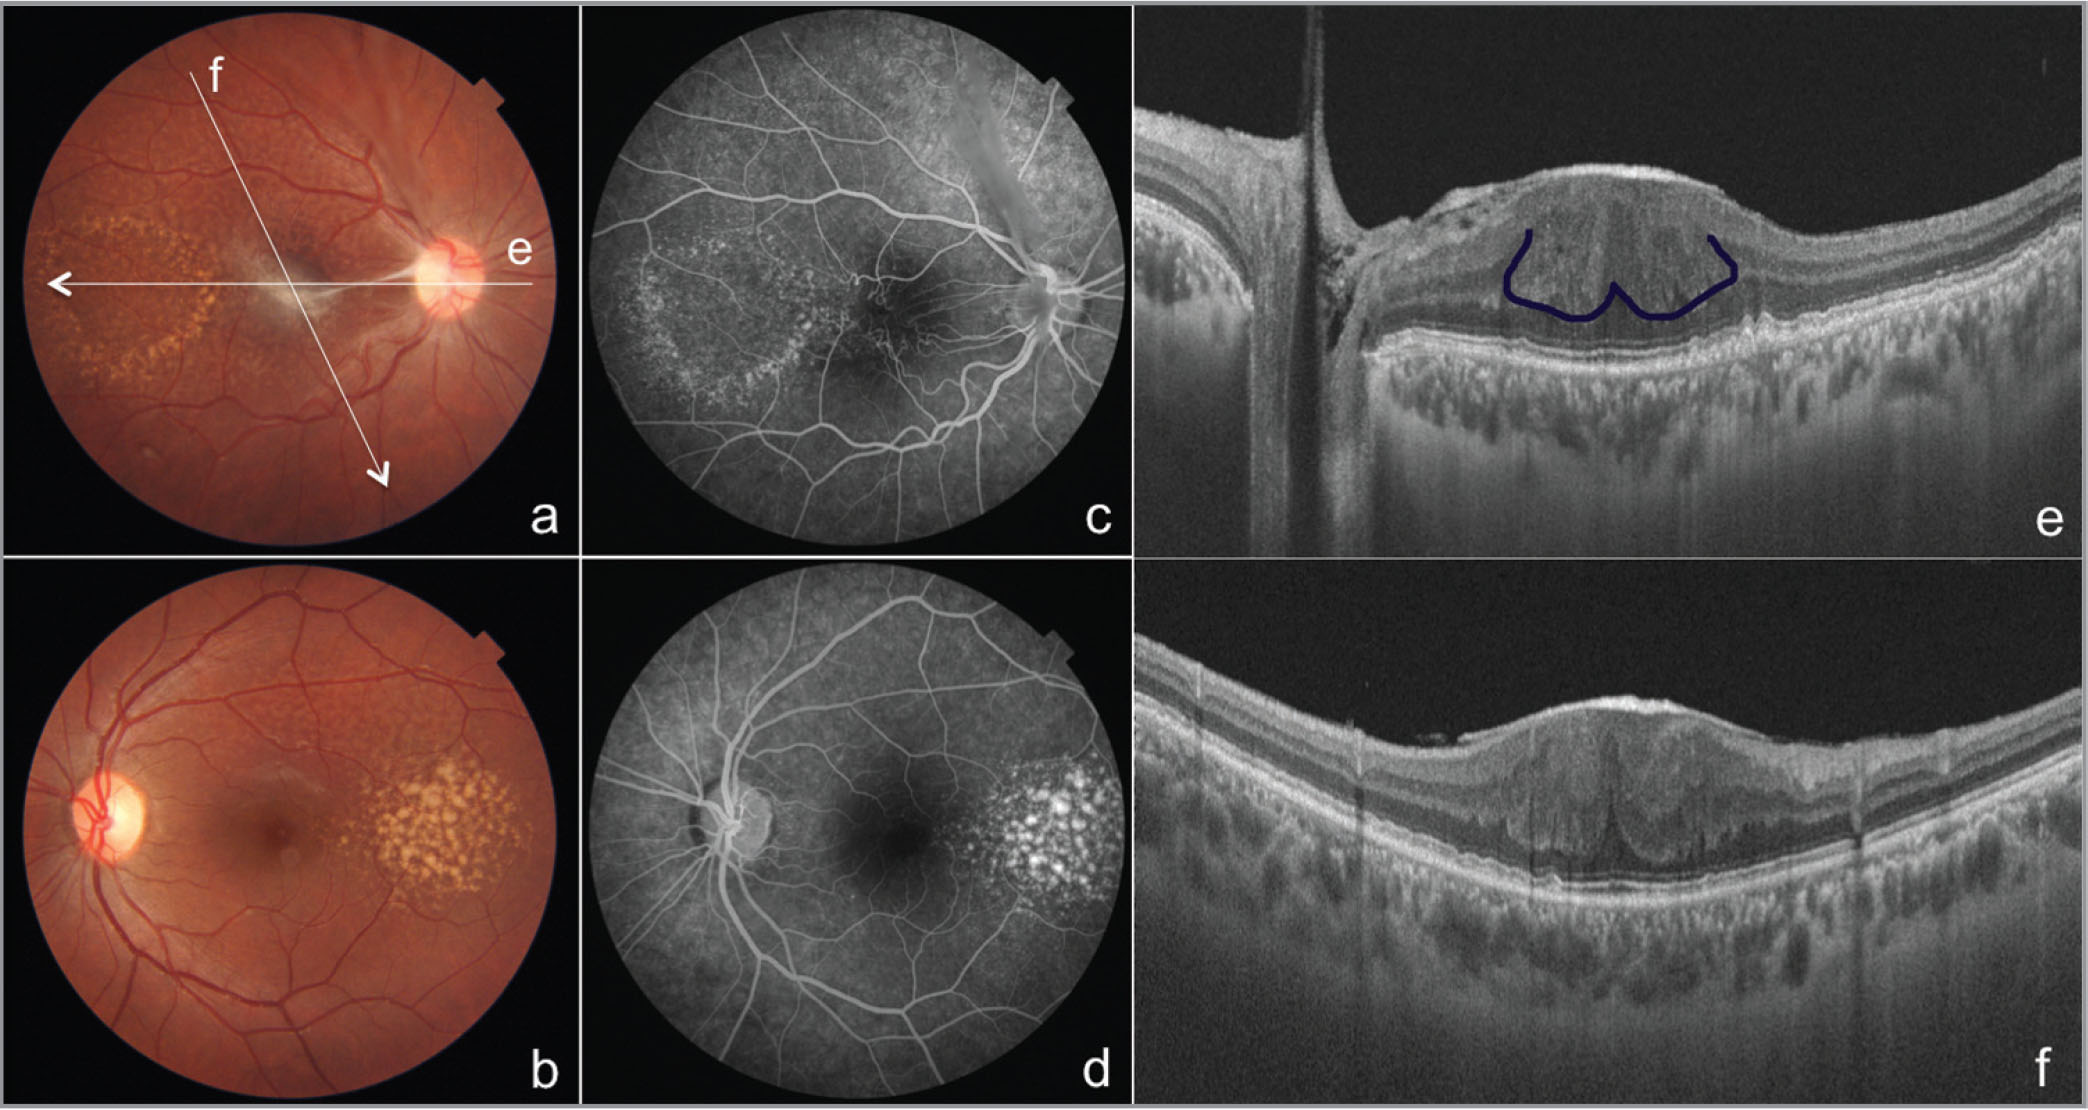 """Color fundus photographs of right (A) and left eyes (B) show reticular pseudodrusen in the temporal macula. Additionally, the right eye shows epiretinal membrane (ERM) extending from the optic disc to the macula. White arrows marked """"e"""" and """"f"""" show the position of optical coherence tomography (OCT) scans in (E) and (F). Fluorescein angiograms show drusen in both eyes (C, D) and vascular tortuosity beneath the ERM in the right eye. Swept-source OCT (E) shows ERM, drusen, and omega-shaped localized thickening of the retina that is bounded posteriorly by the outer plexiform layer (Omega sign is marked by blue line). Omega sign is more prominent in the oblique scan (F)."""